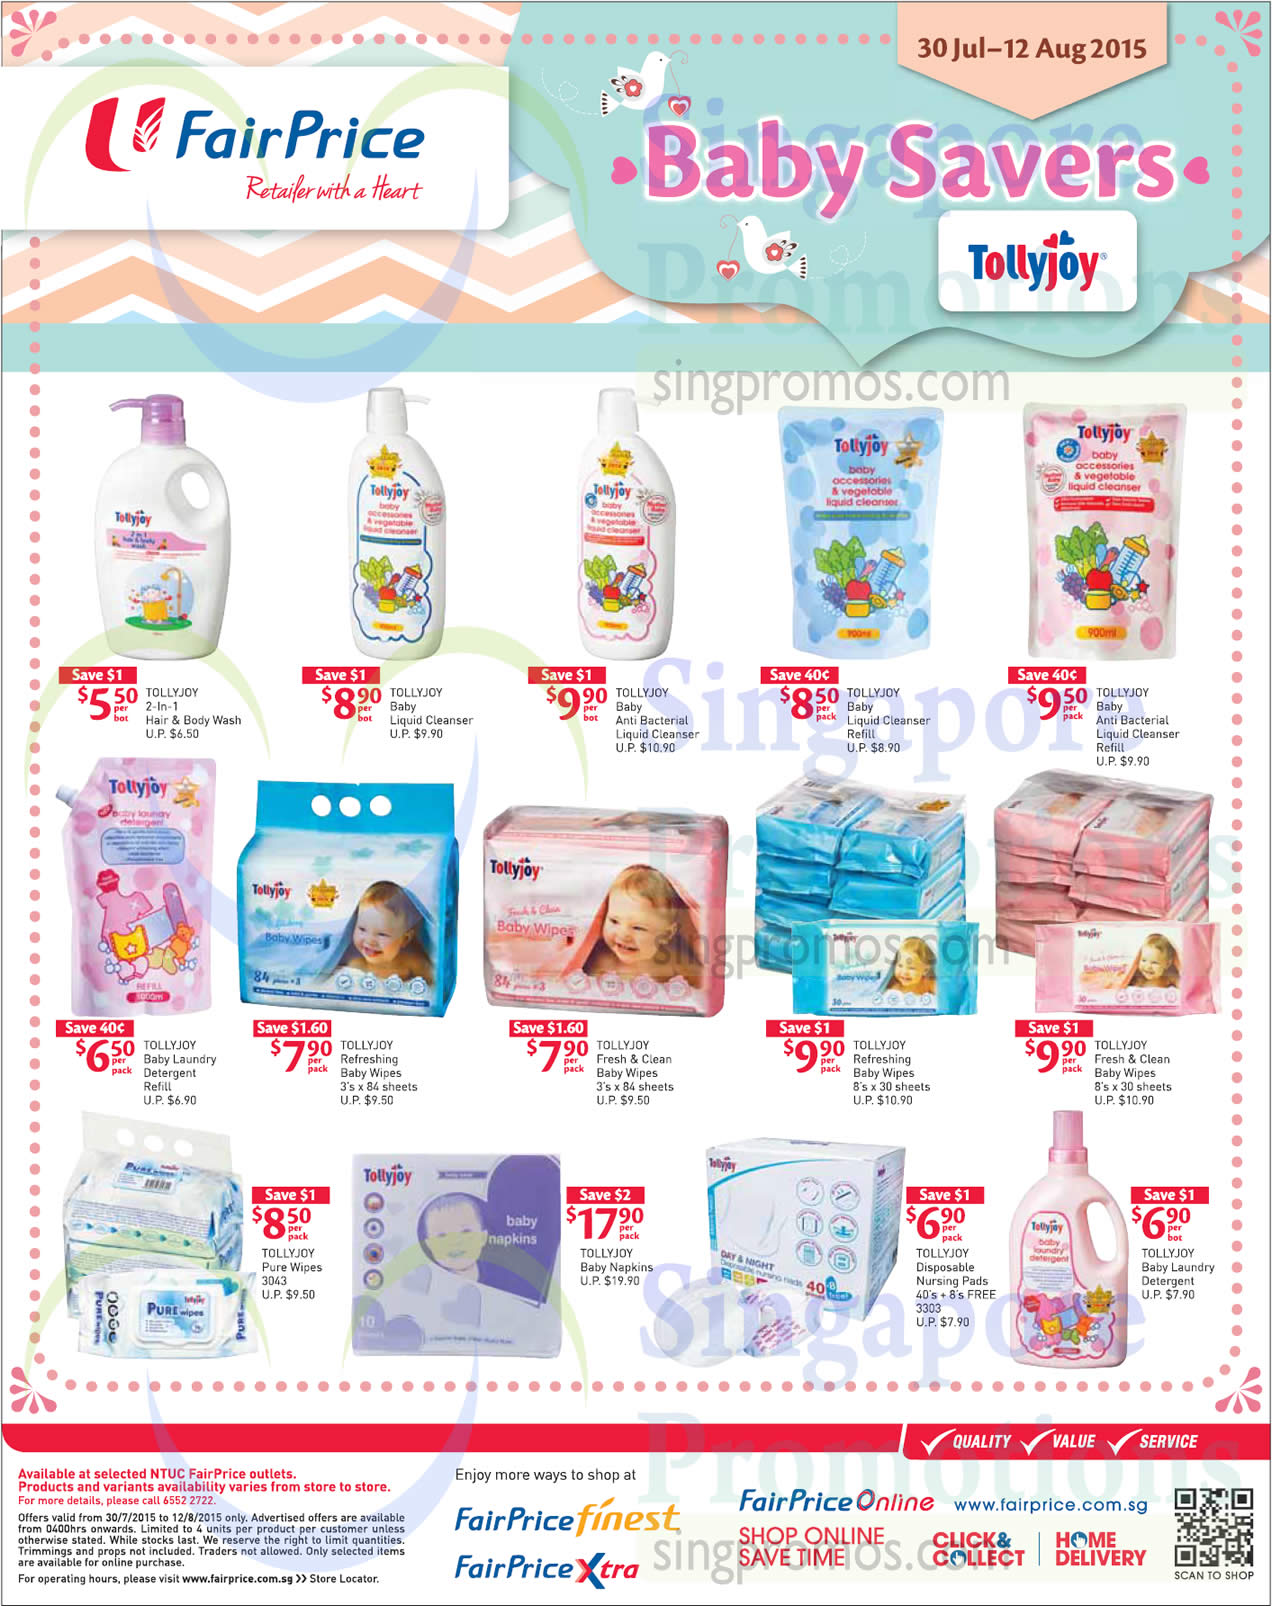 Tollyjoy Baby Napkins, Tollyjoy Pure Wipes 3043, Tollyjoy Refreshing Baby Wipes, Tollyjoy Fresh & Clean Baby Wipes, Tollyjoy Baby Anti Bacterial Liquid Cleanser, Tollyjoy Baby Anti Bacterial Liquid Cleanser Refill